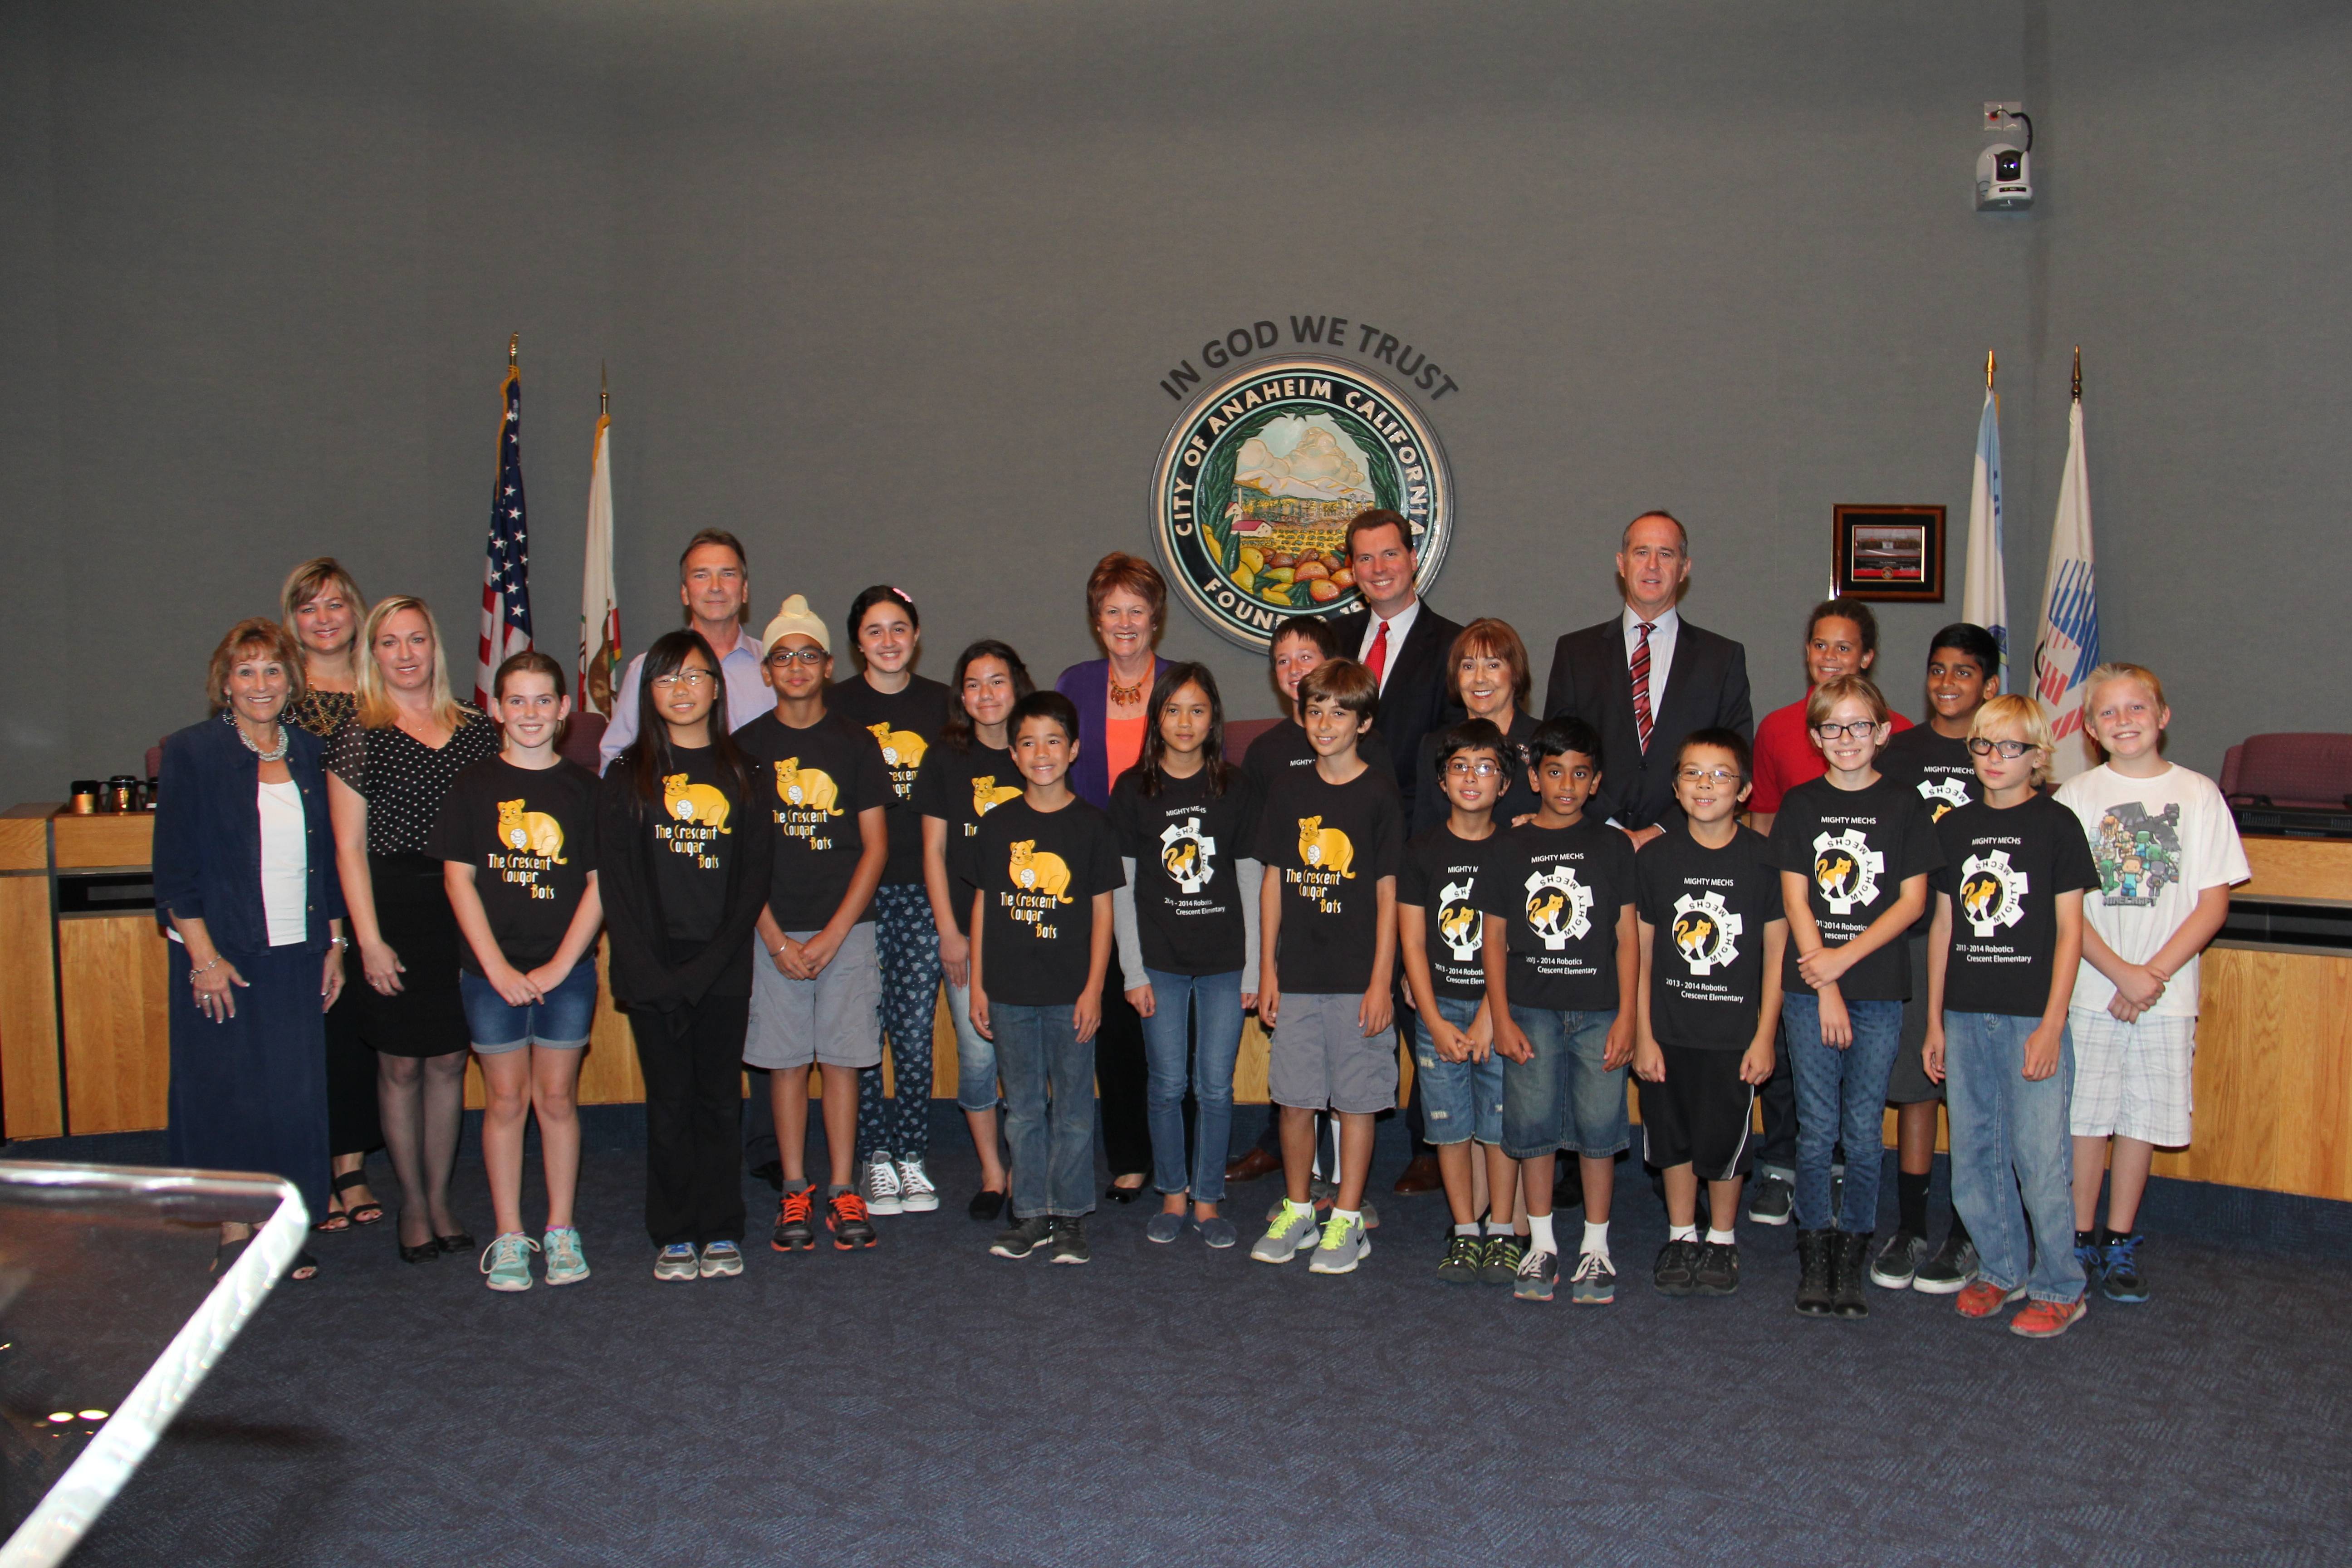 The students from Crescent Cougar Bots are taking a group photo with councilmembers